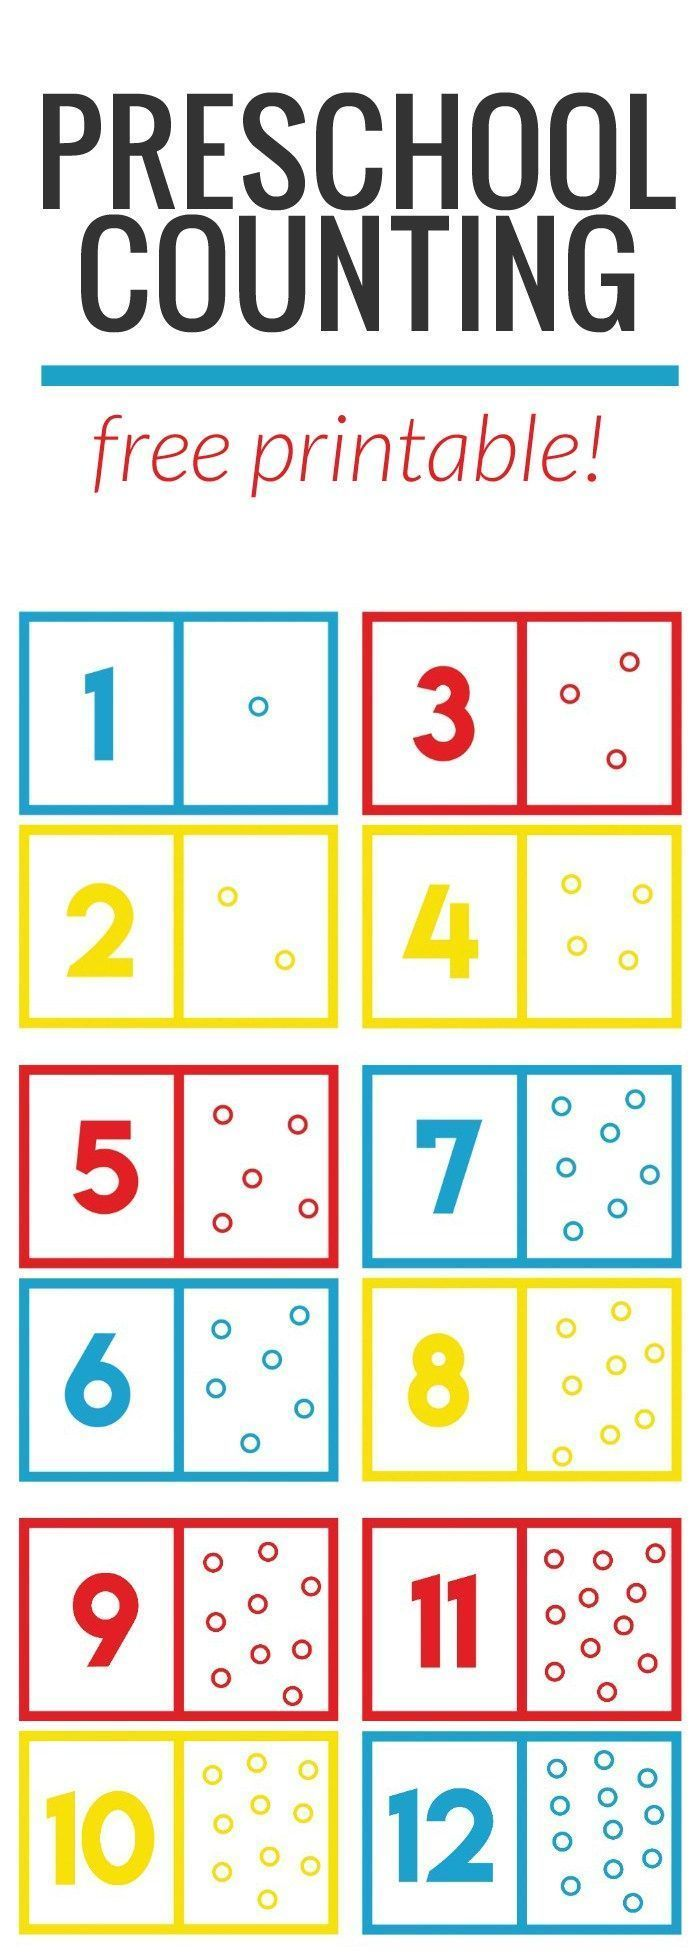 694 best number ideas images on Pinterest | Kindergarten, Counting ...